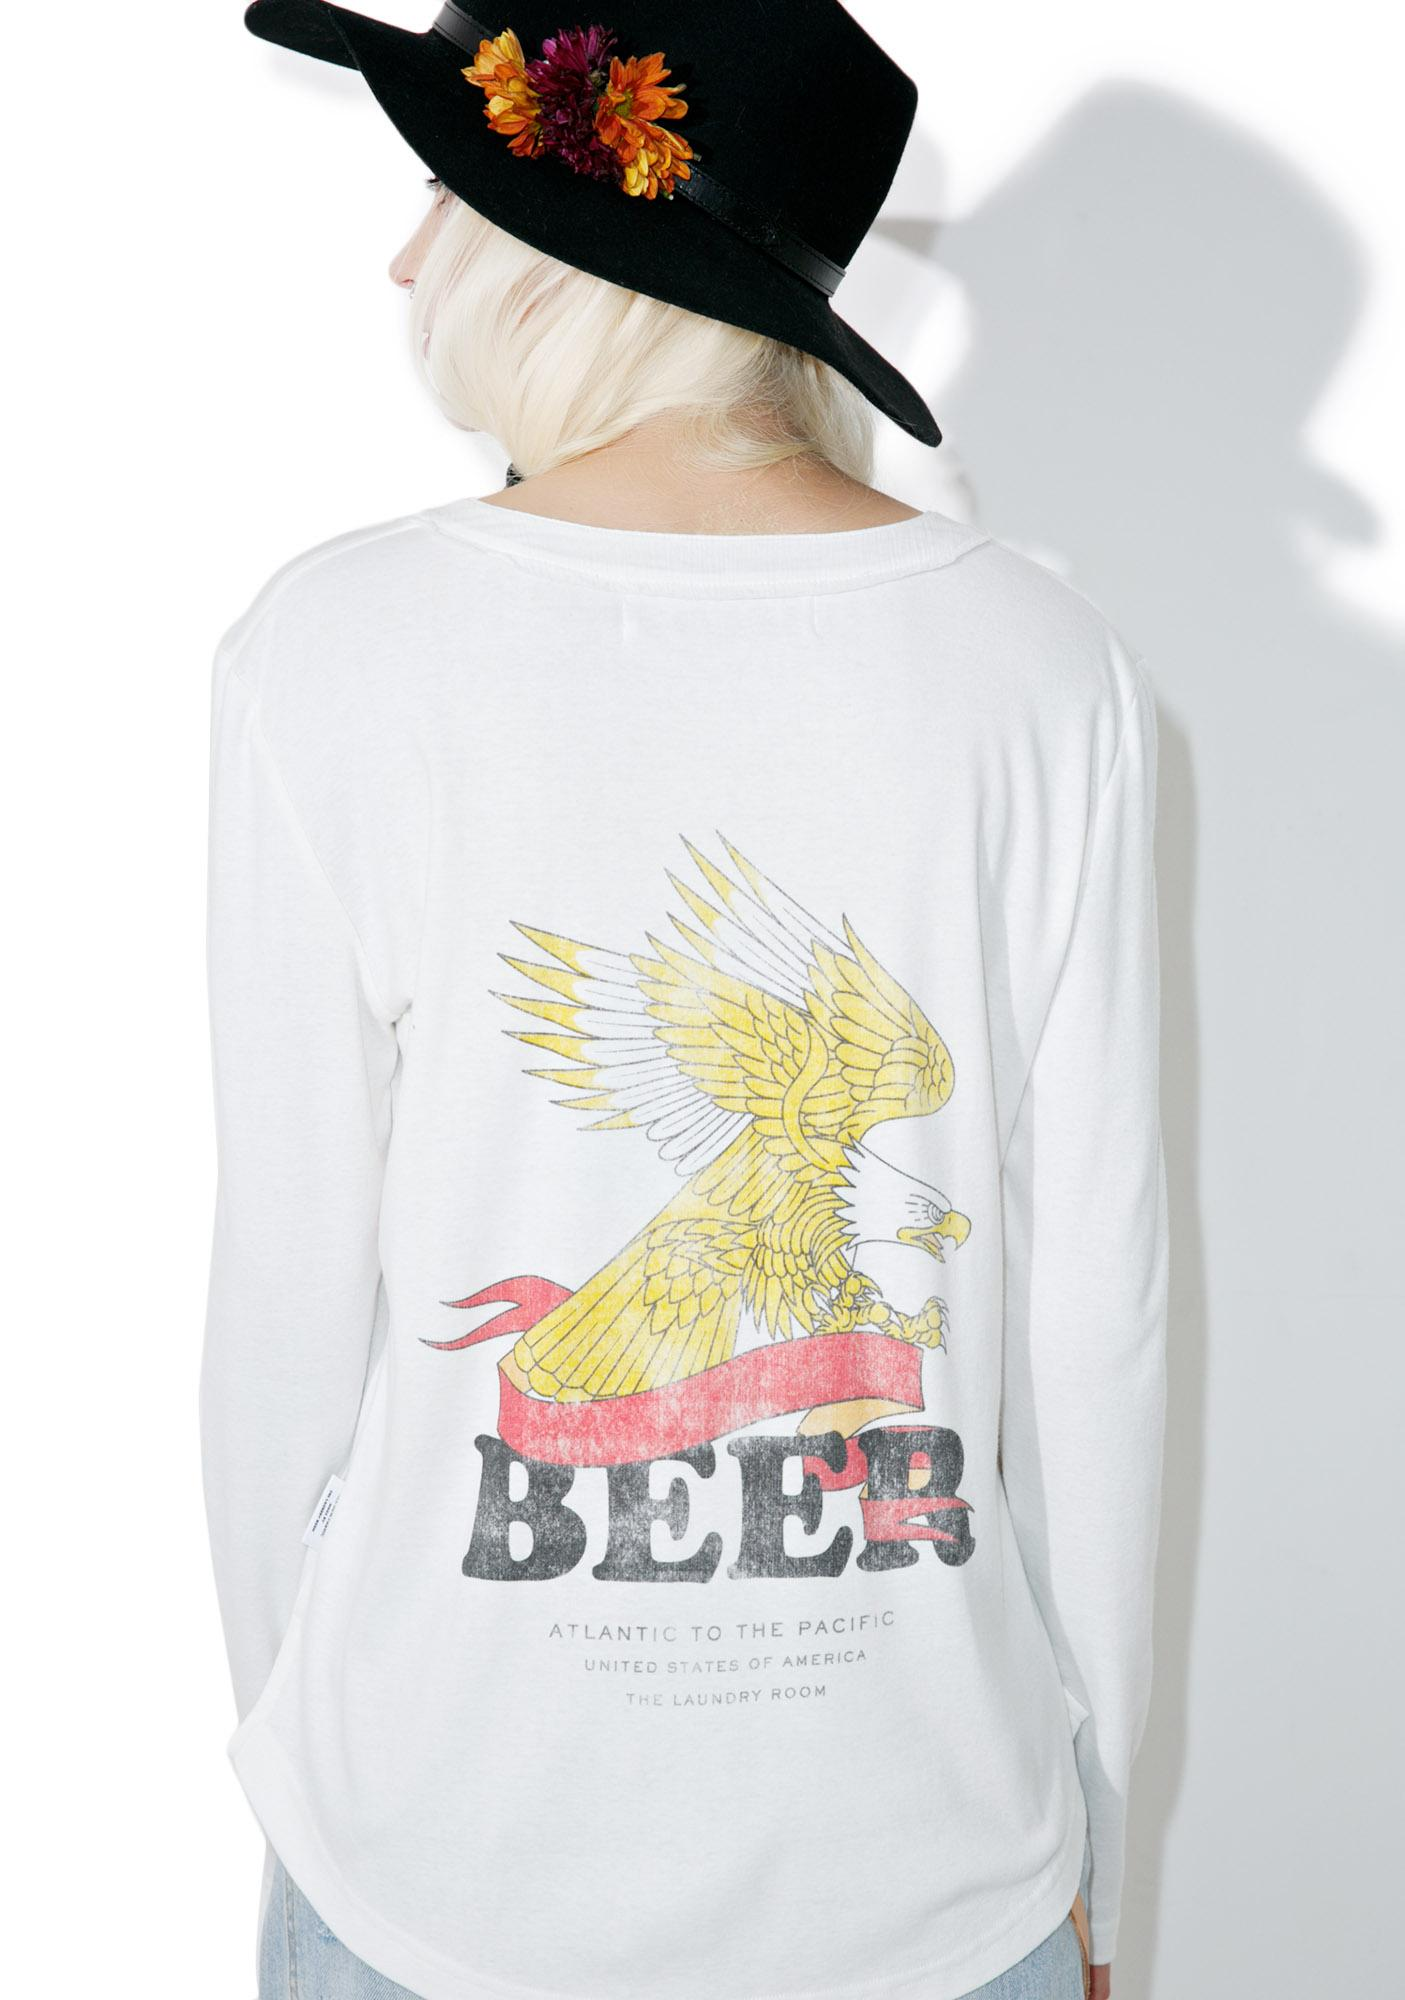 The Laundry Room Beer Banner Shirt